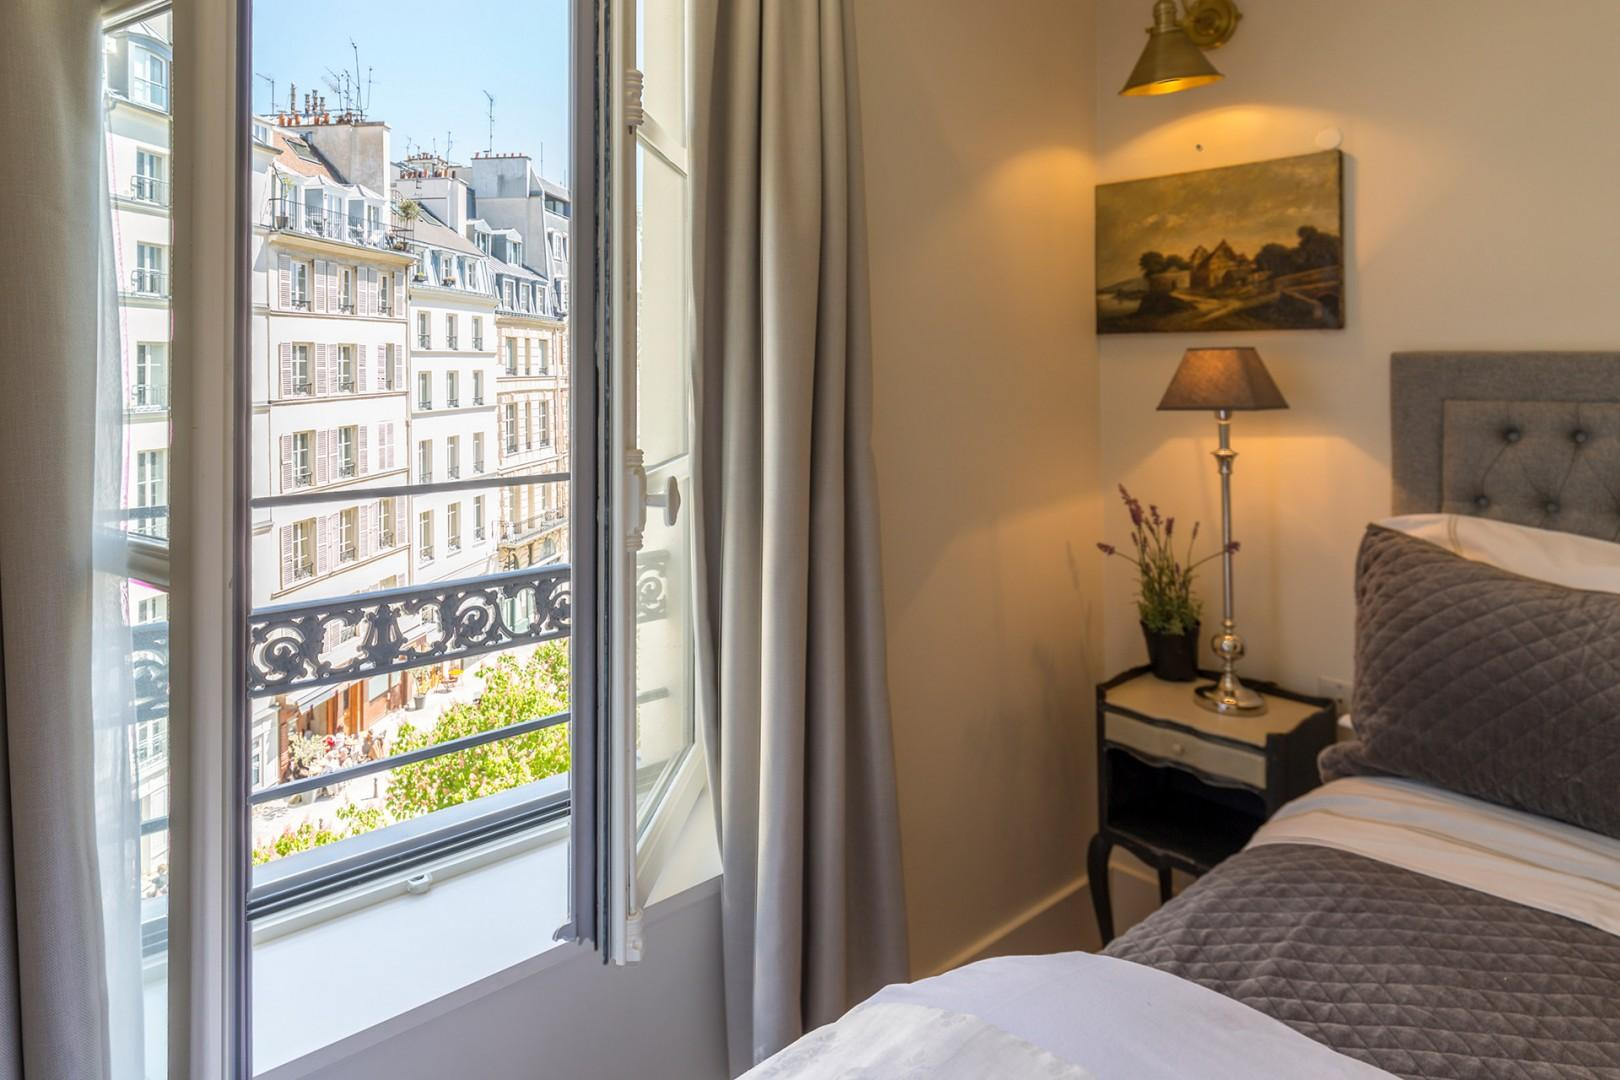 Wake up to the most stunning view over Place Dauphine.